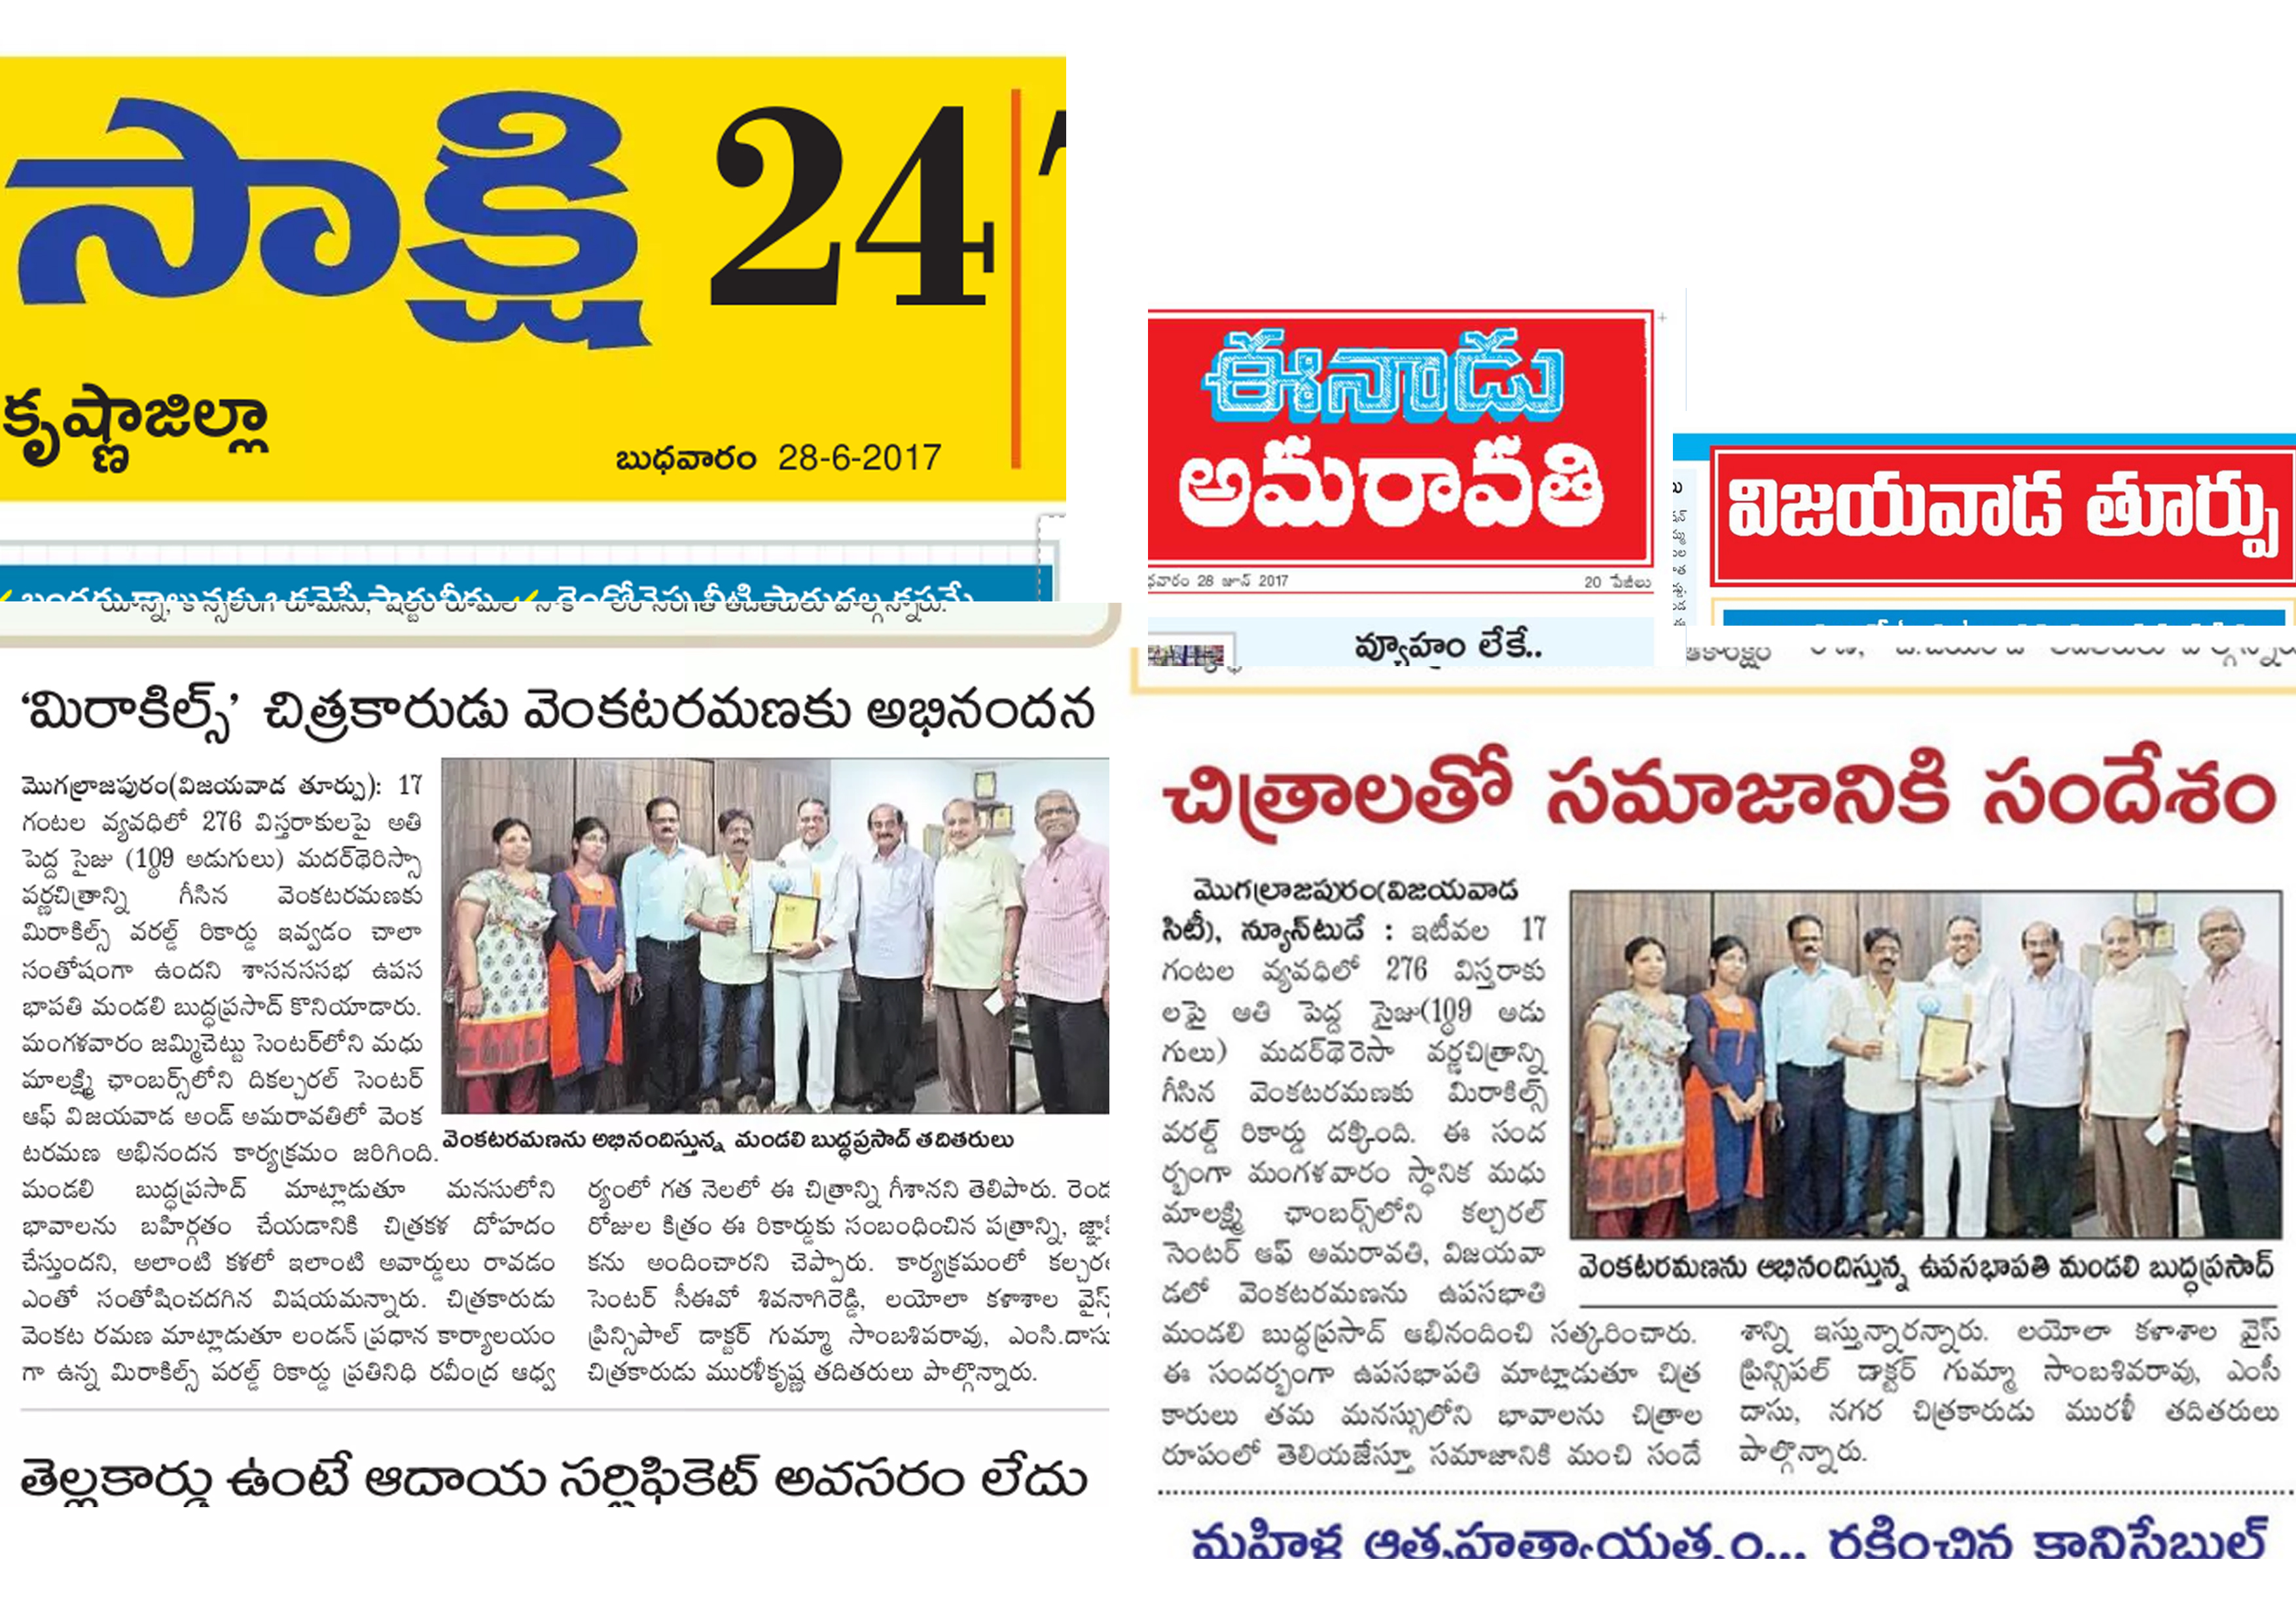 "LARGEST PORTRAIT ON ARECA LEAF PLATES MARRIPUDI VENKATA RAMANA, Art Teacher, VIJAYAWADA, ANDHRA PRADESH has created a new record by painting mother Teresa on 276 areca leaf plates arranged in 10 x 9"" size on paper with emulsion colors within 17 hours. http://miraclesworldrecords.com/Gallery/Details/5271"